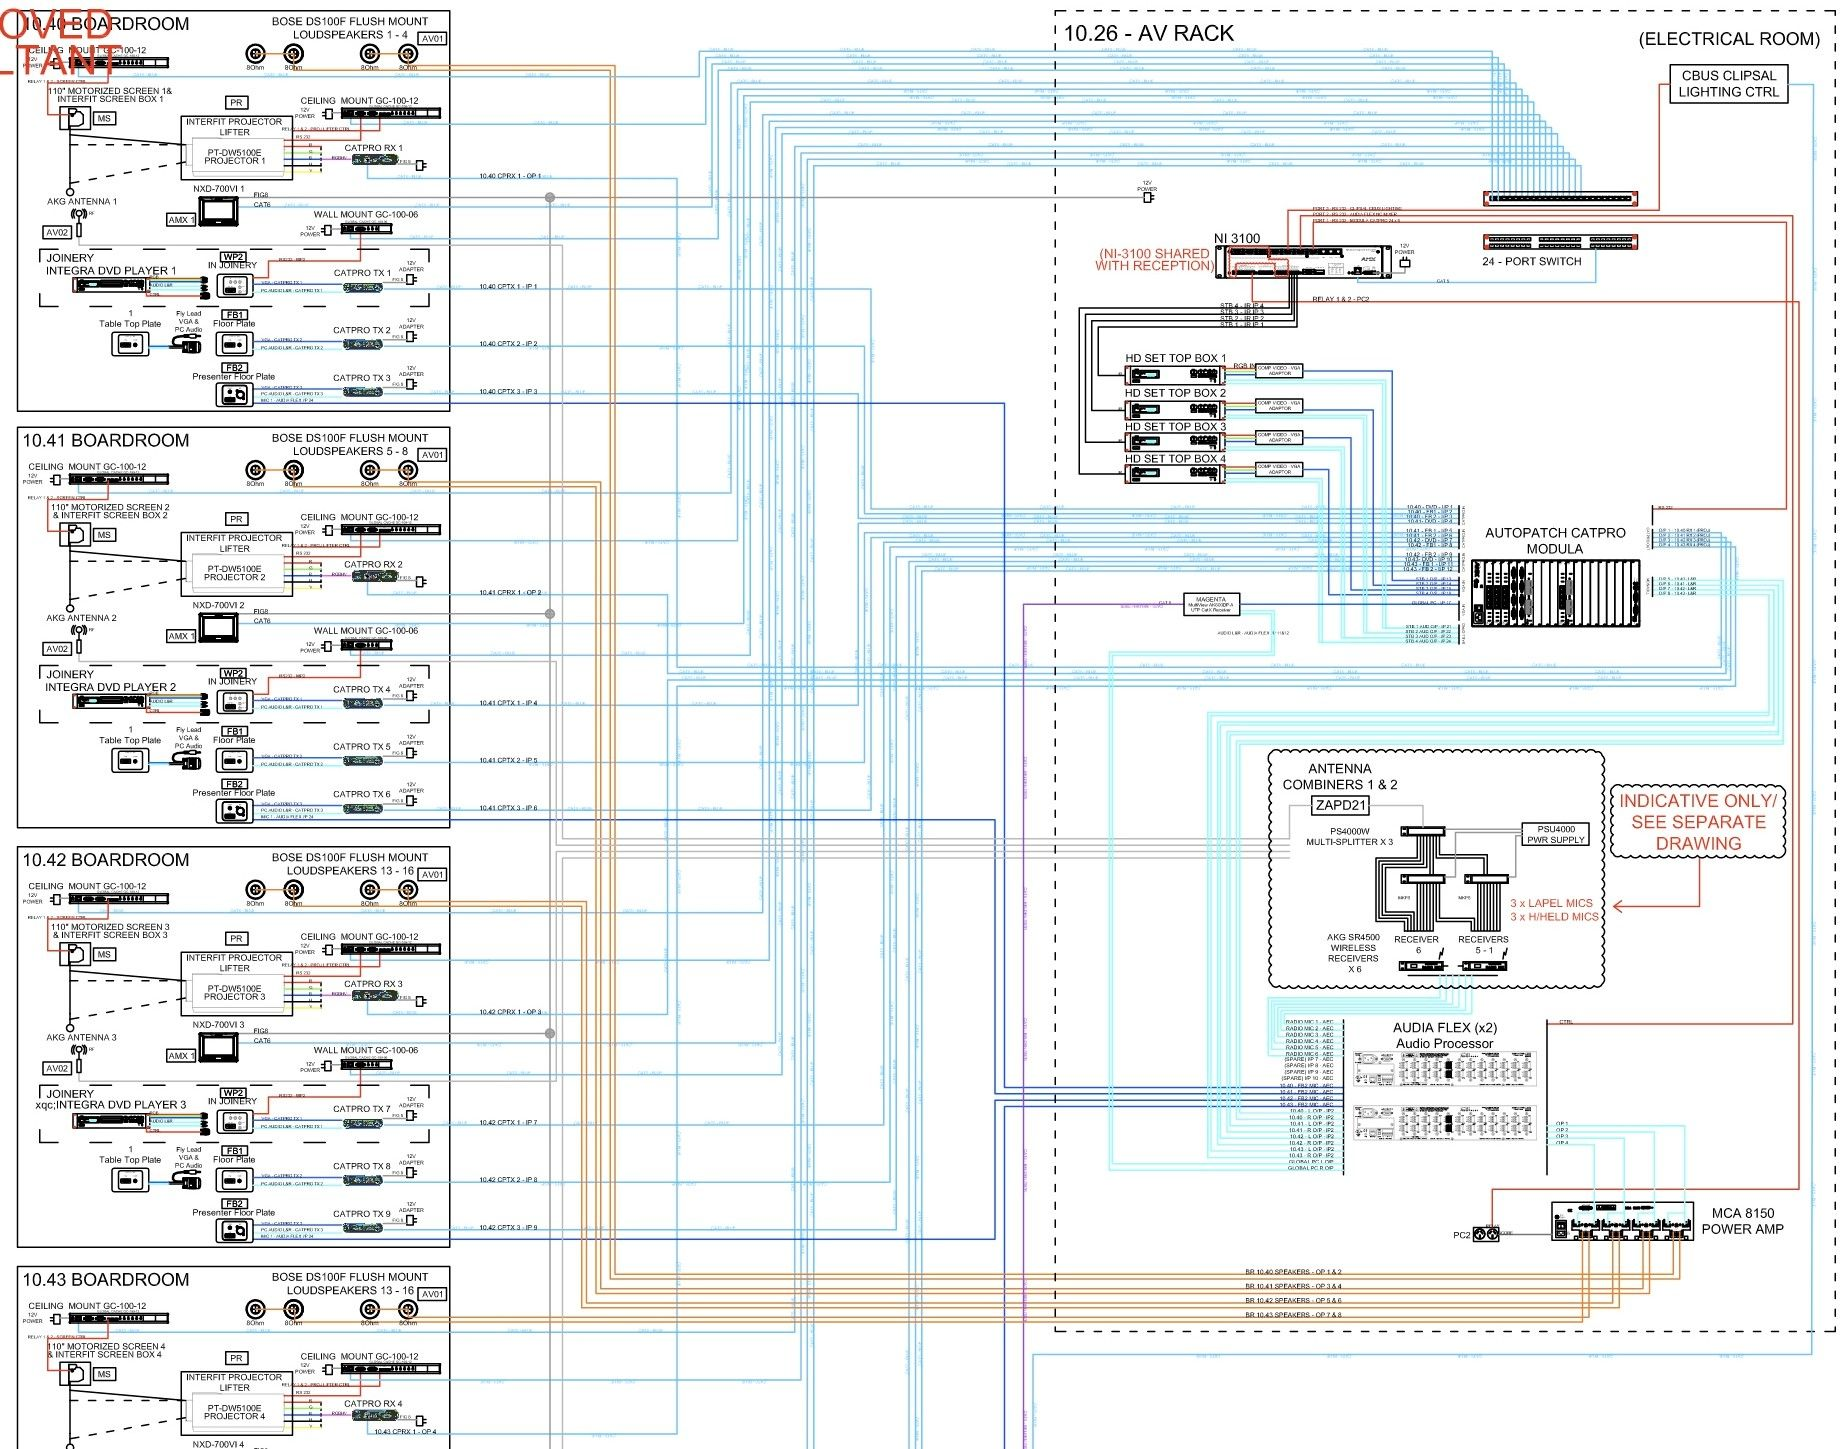 server rack wiring diagram 22 bolt action rifle multiple boardrooms with central av system